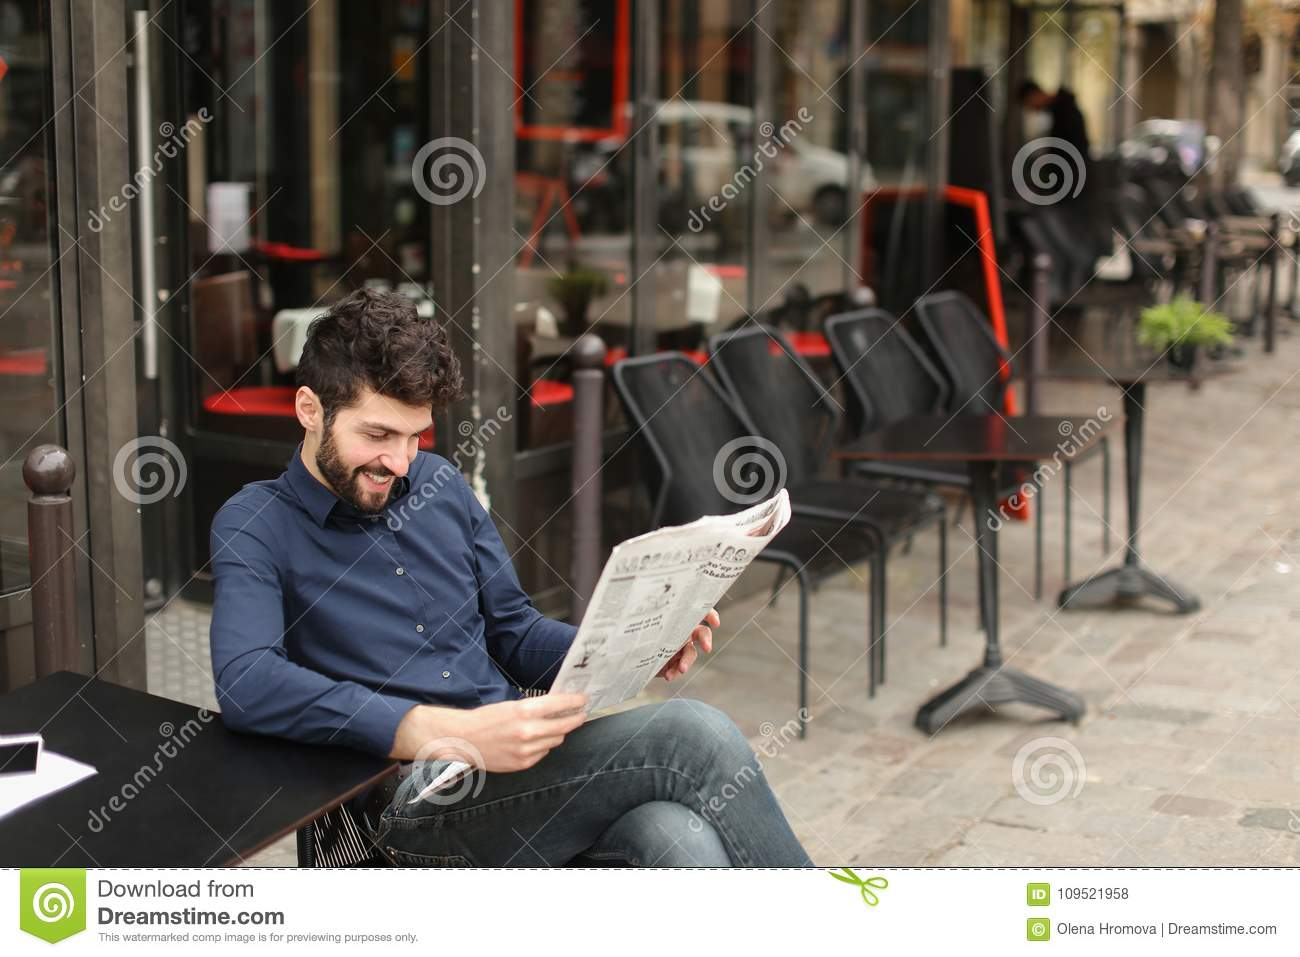 Journalist With Close Up Face Reading Newspaper Article At